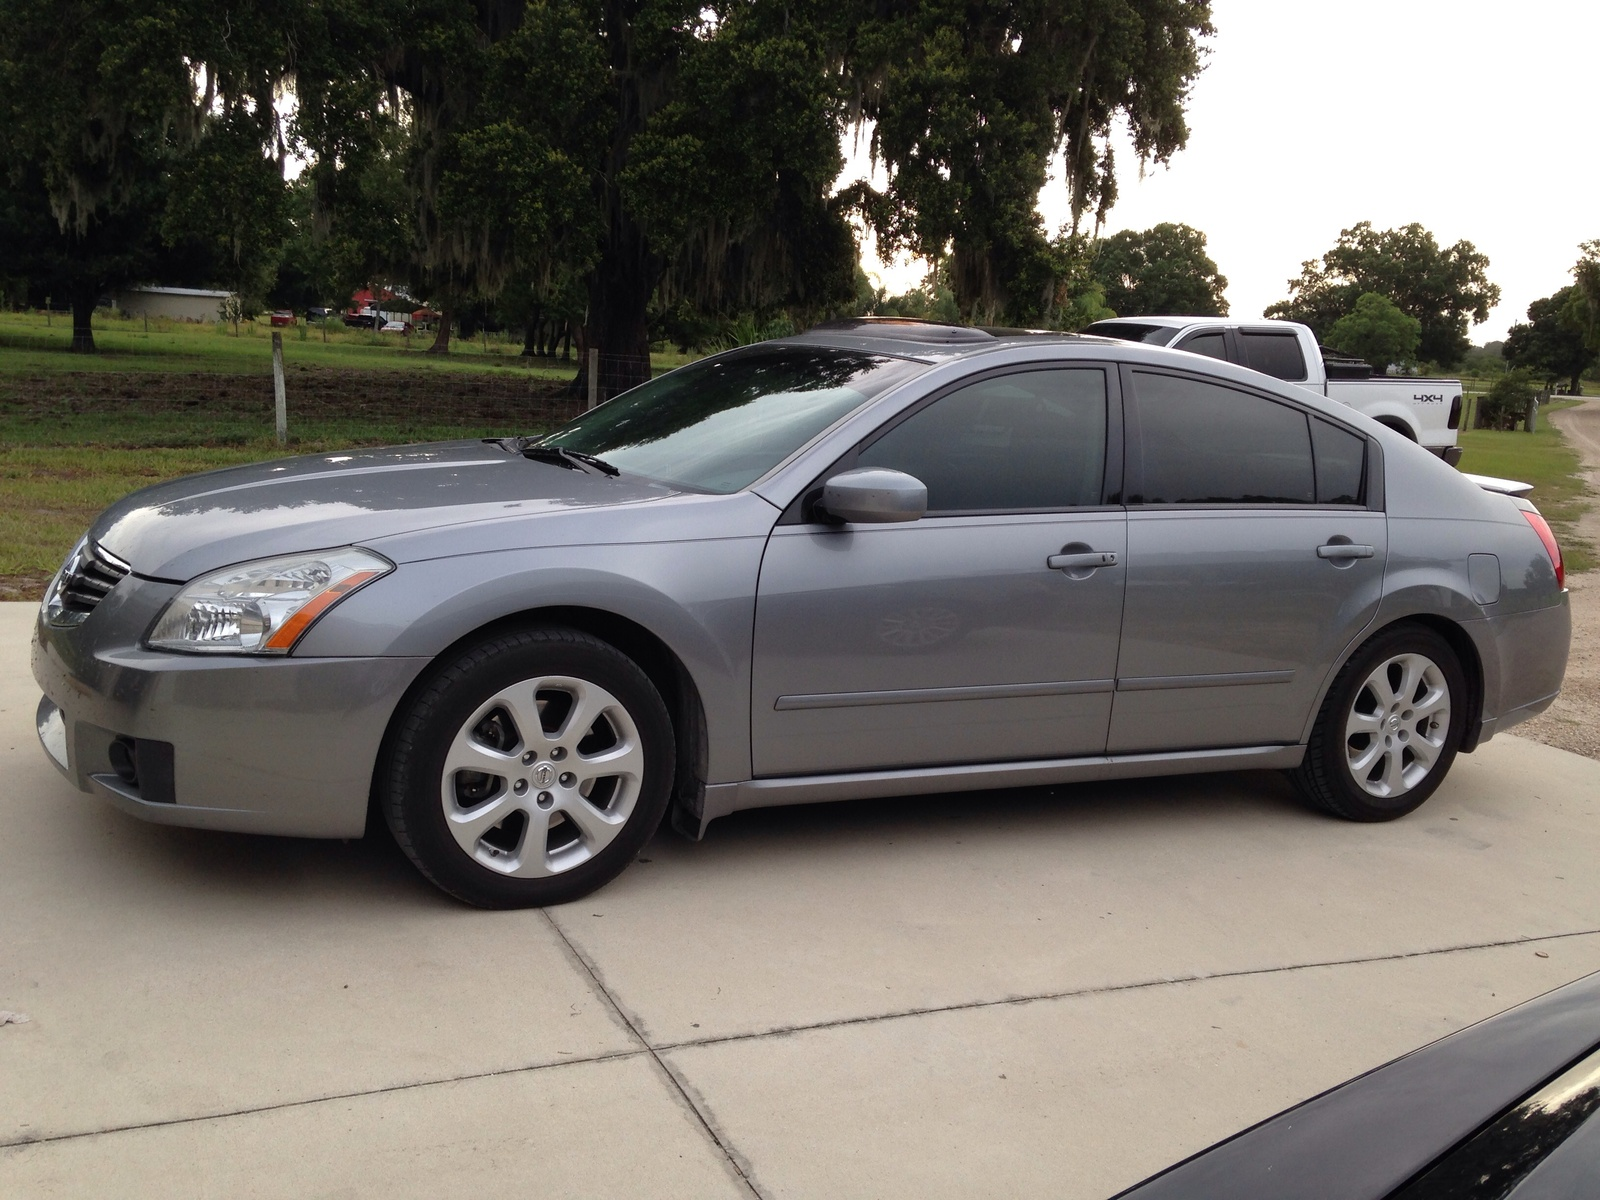 2008 nissan altima custom with 2008 Nissan Maxima Pictures C9099 on Review 2010 Nissan Altima Coupe further Trunk 38163445 as well 2008 Nissan Maxima Pictures C9099 also Nissan Altima 2018 Interior besides 2010 Nissan Altima Sedan Photo 416378.